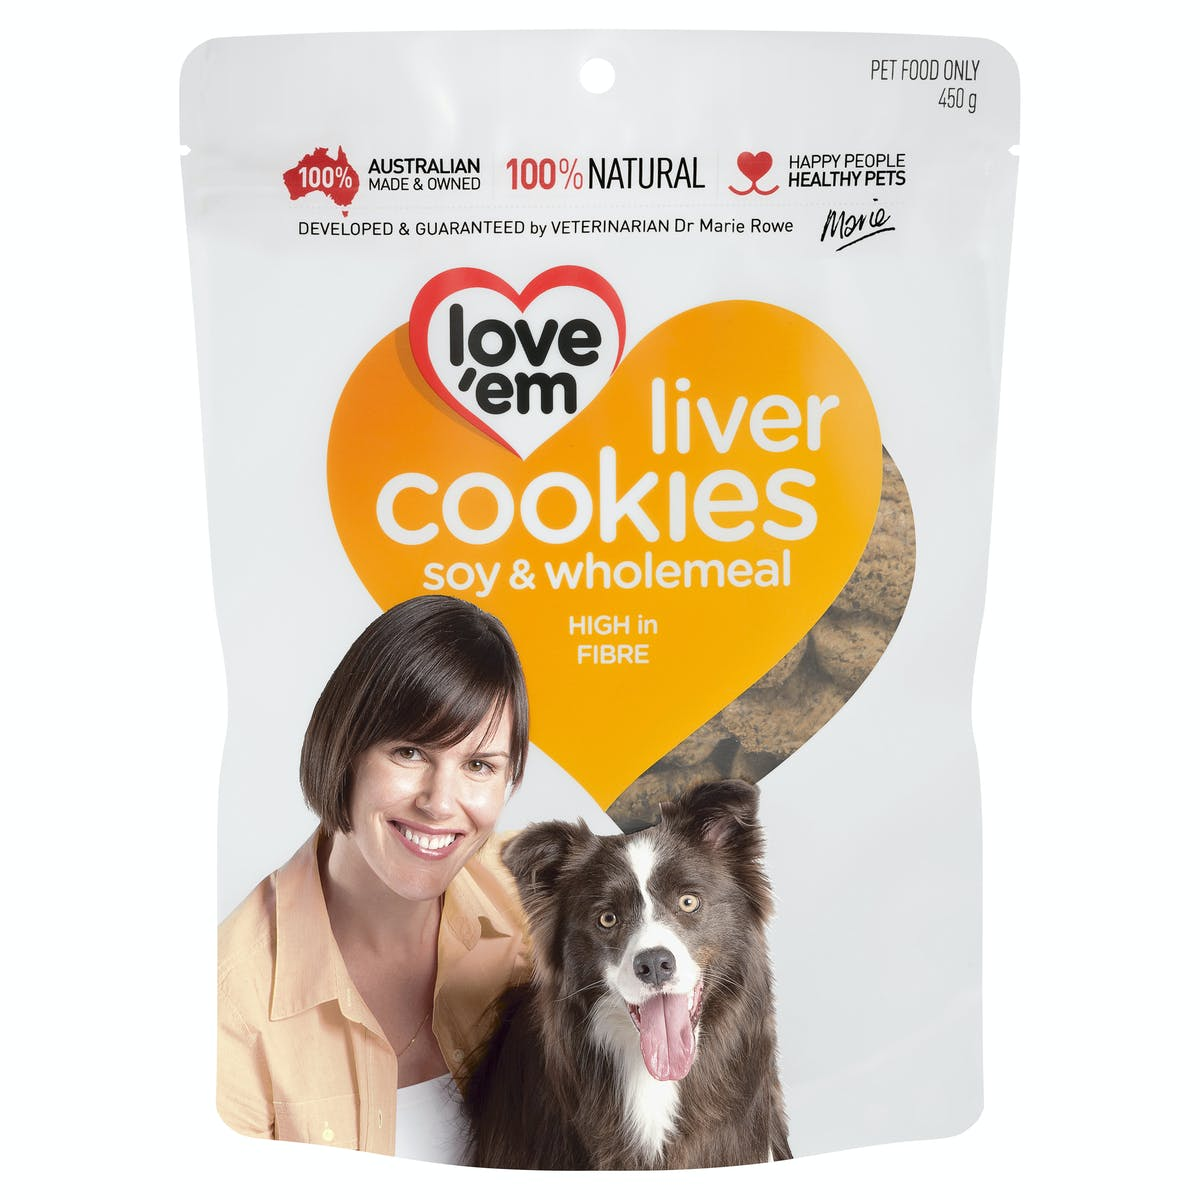 Love'em   liver cookies soy & wholemeal   Indulge dog   Front of pack